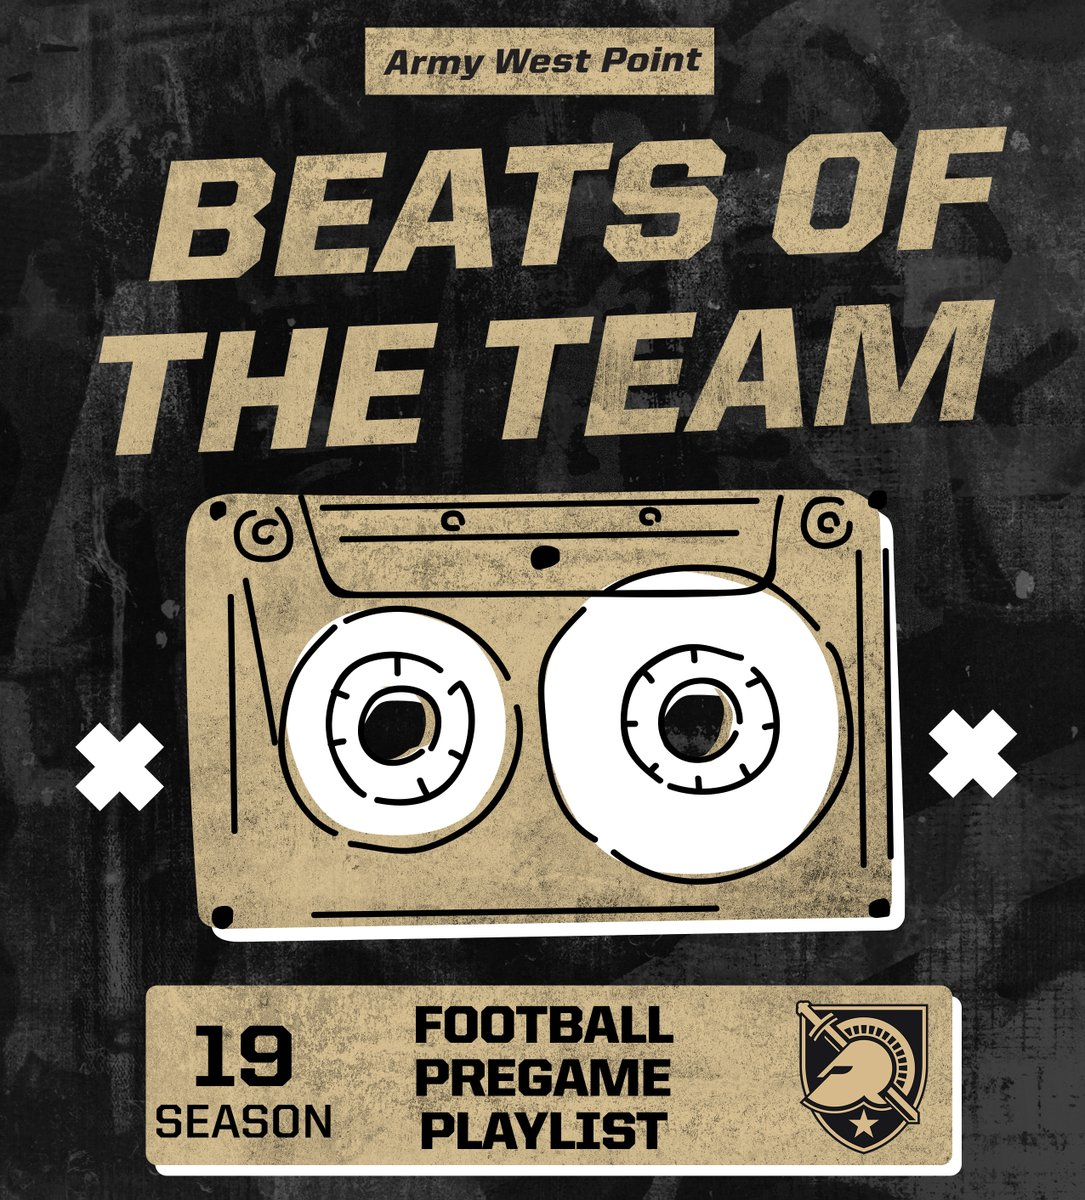 Beats by Army Football. Weve got you setup with our pregame playlist on Spotify. Follow it here🎧 open.spotify.com/playlist/0Ofso… #GoArmy